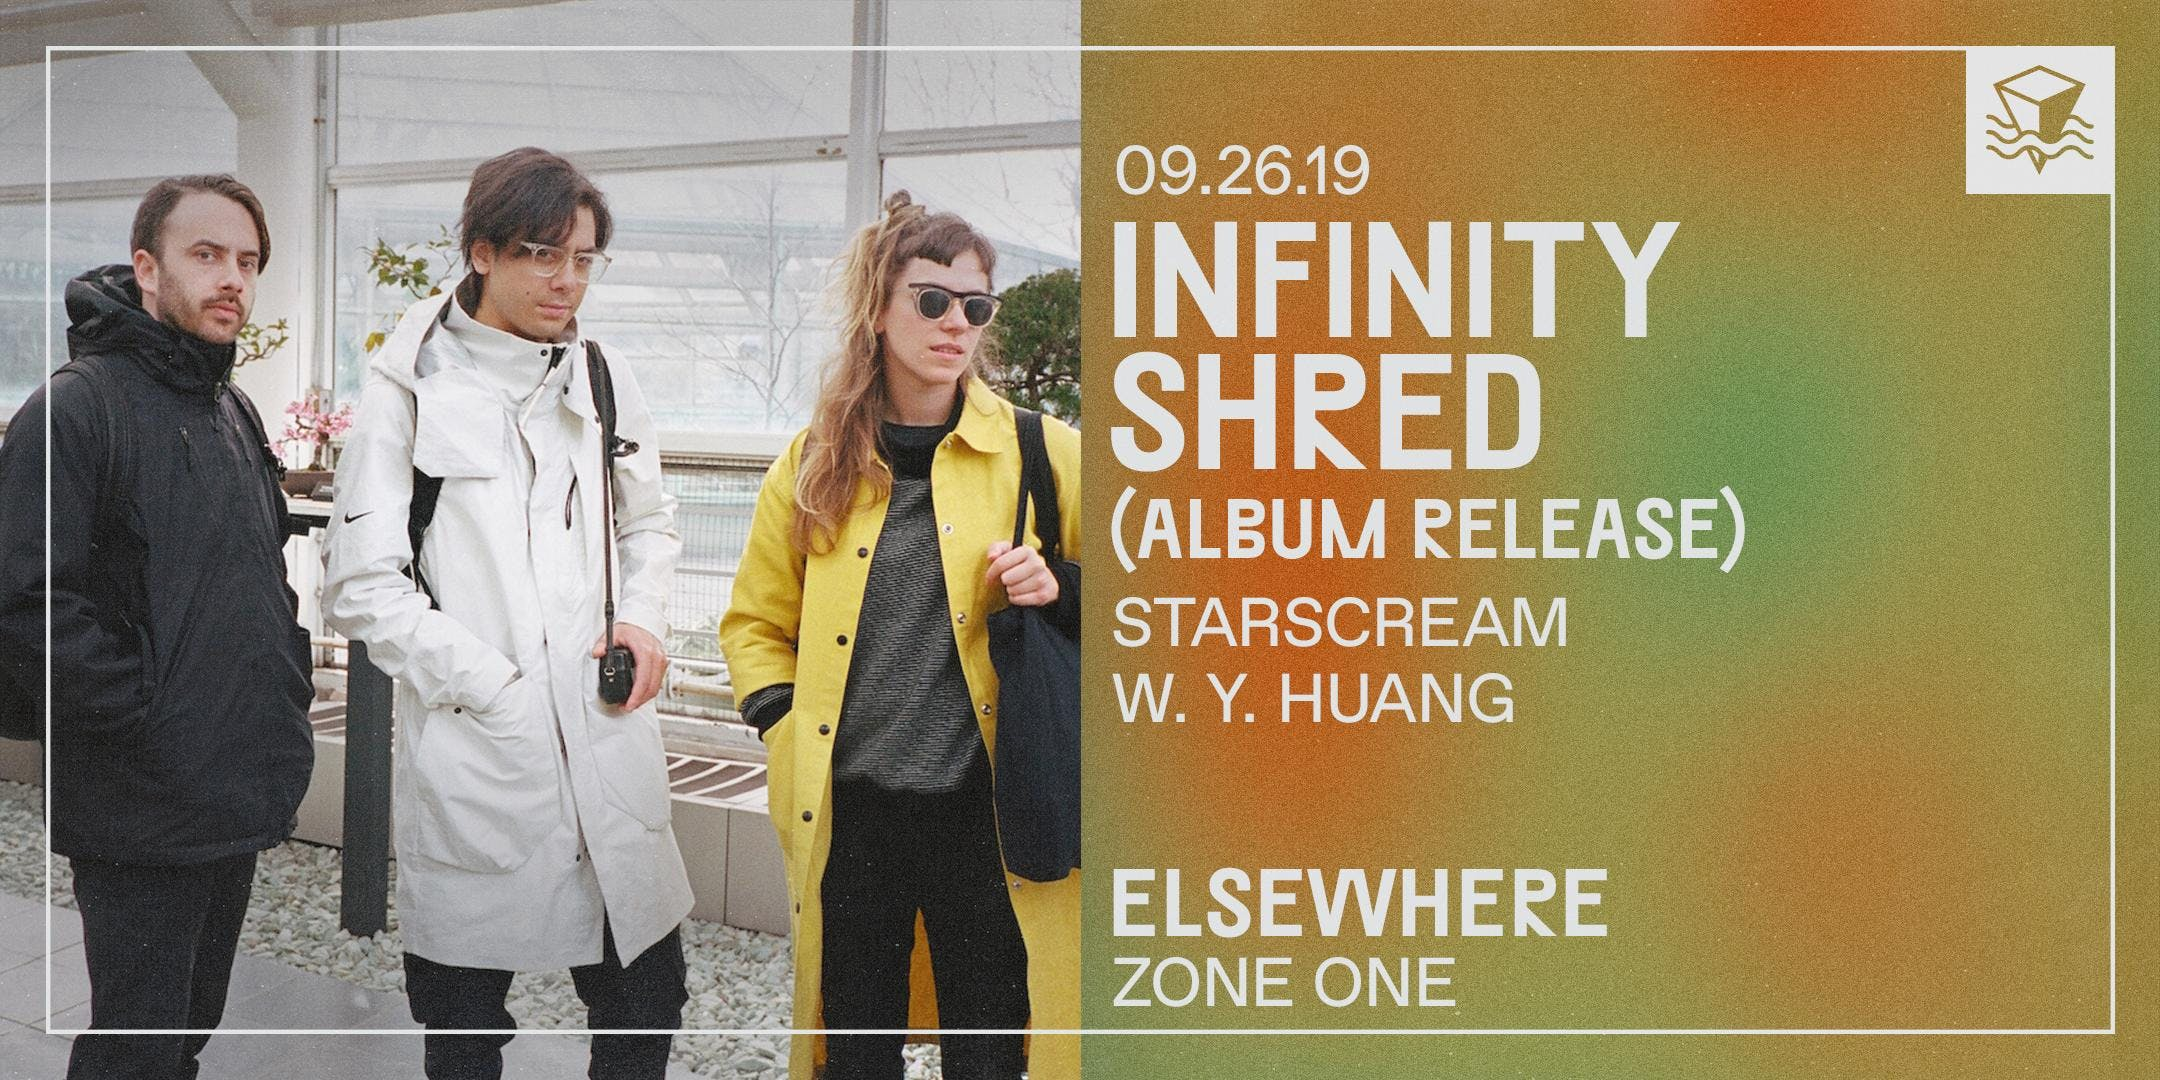 Infinity Shred (Album Release!)